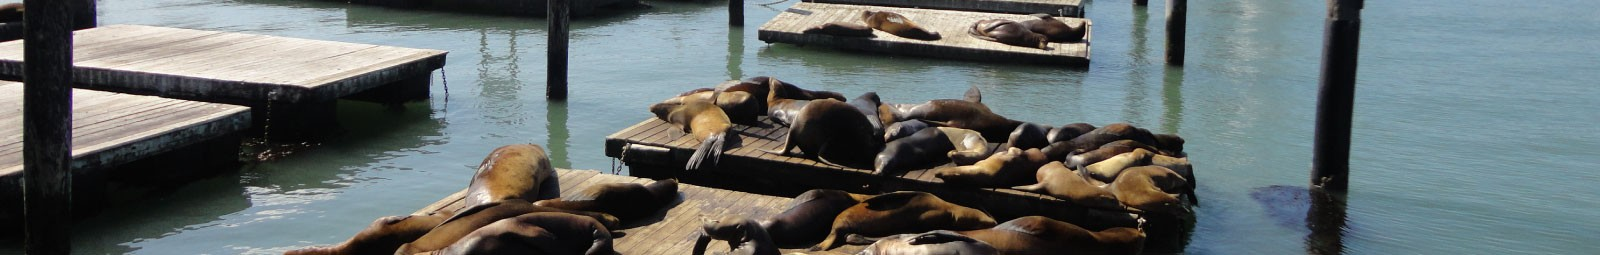 Sea lions in sunlight at San Francisco's Fisherman's Wharf